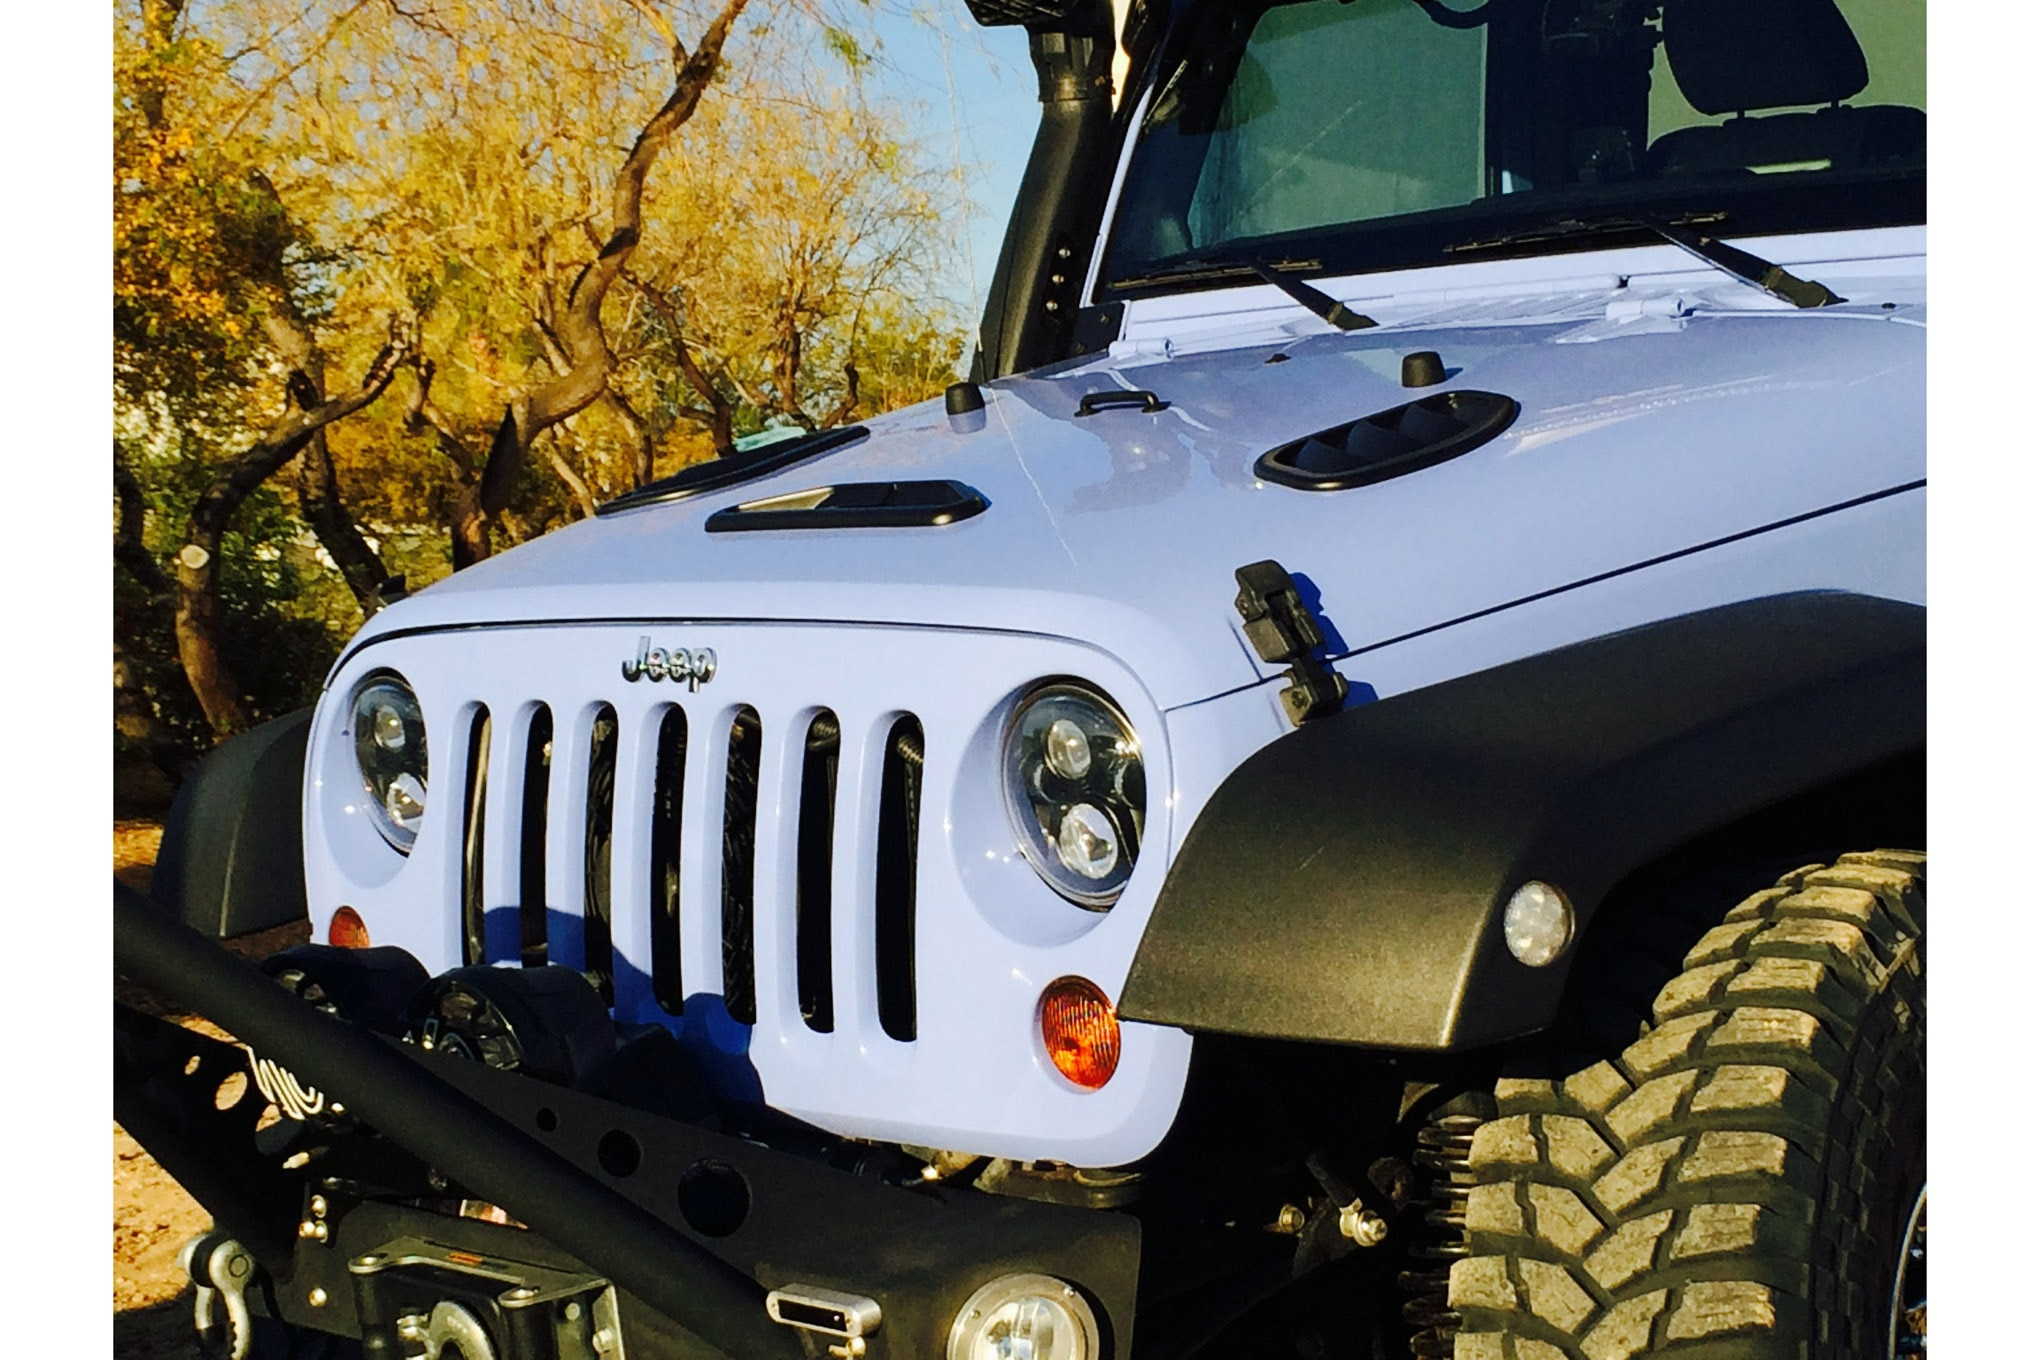 new products daystar jeep wrangler jk hood vents cutouts overheat hot engine [ 2040 x 1360 Pixel ]